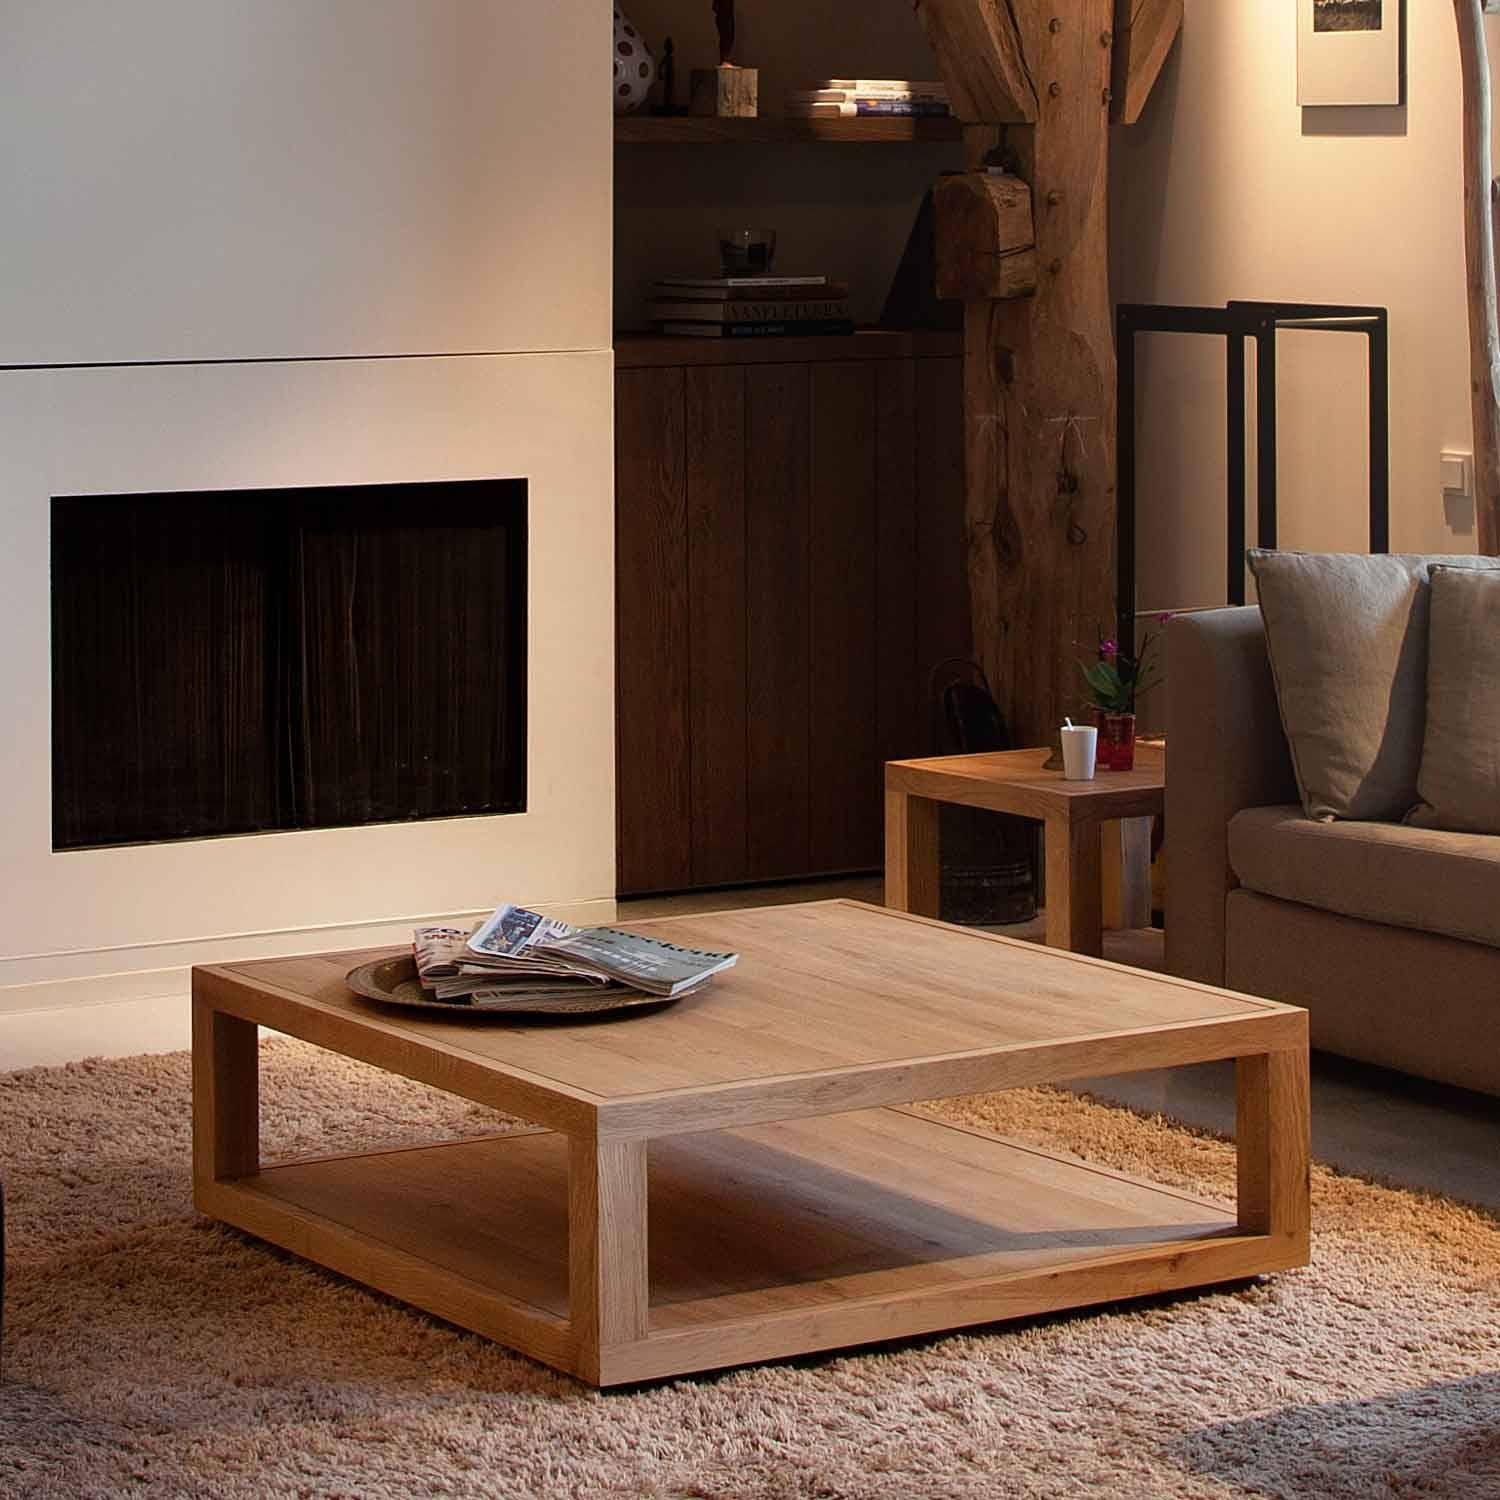 Furniture : Simple Extra Large Low Wooden Square Coffee Table On with regard to Extra Large Low Coffee Tables (Image 10 of 30)